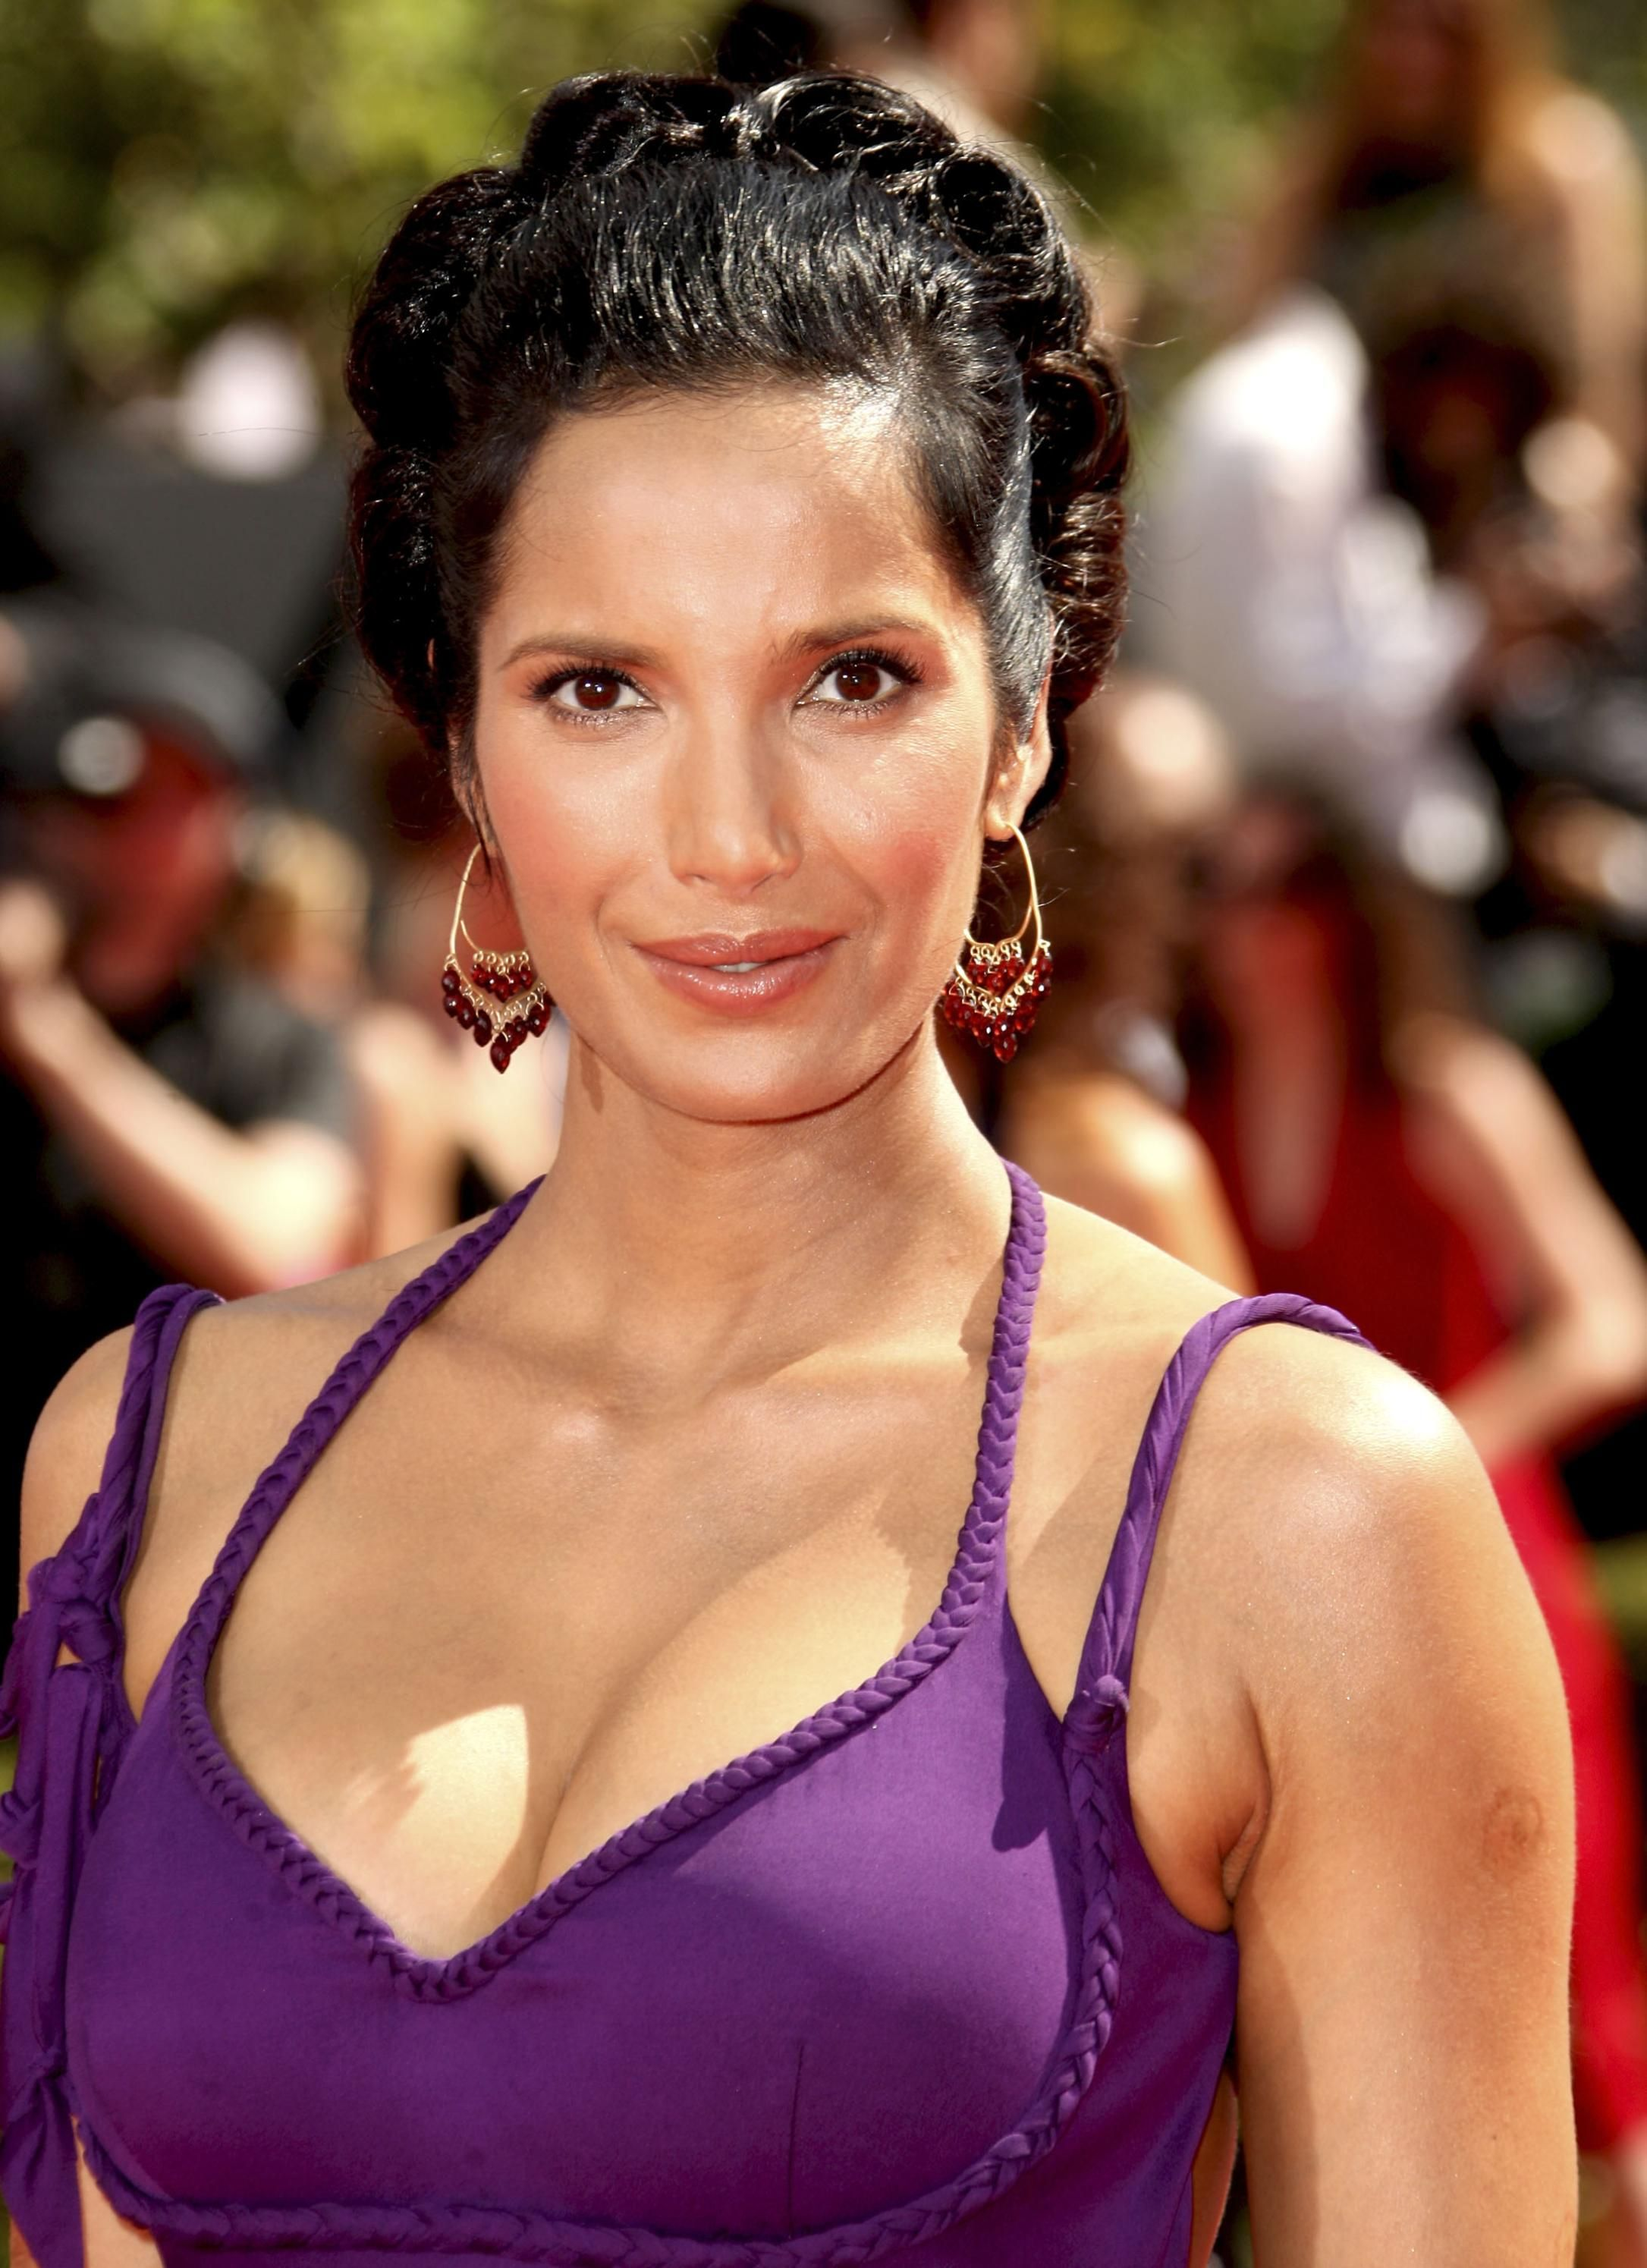 Cleavage Padma Lakshmi nudes (92 foto and video), Tits, Leaked, Boobs, see through 2018